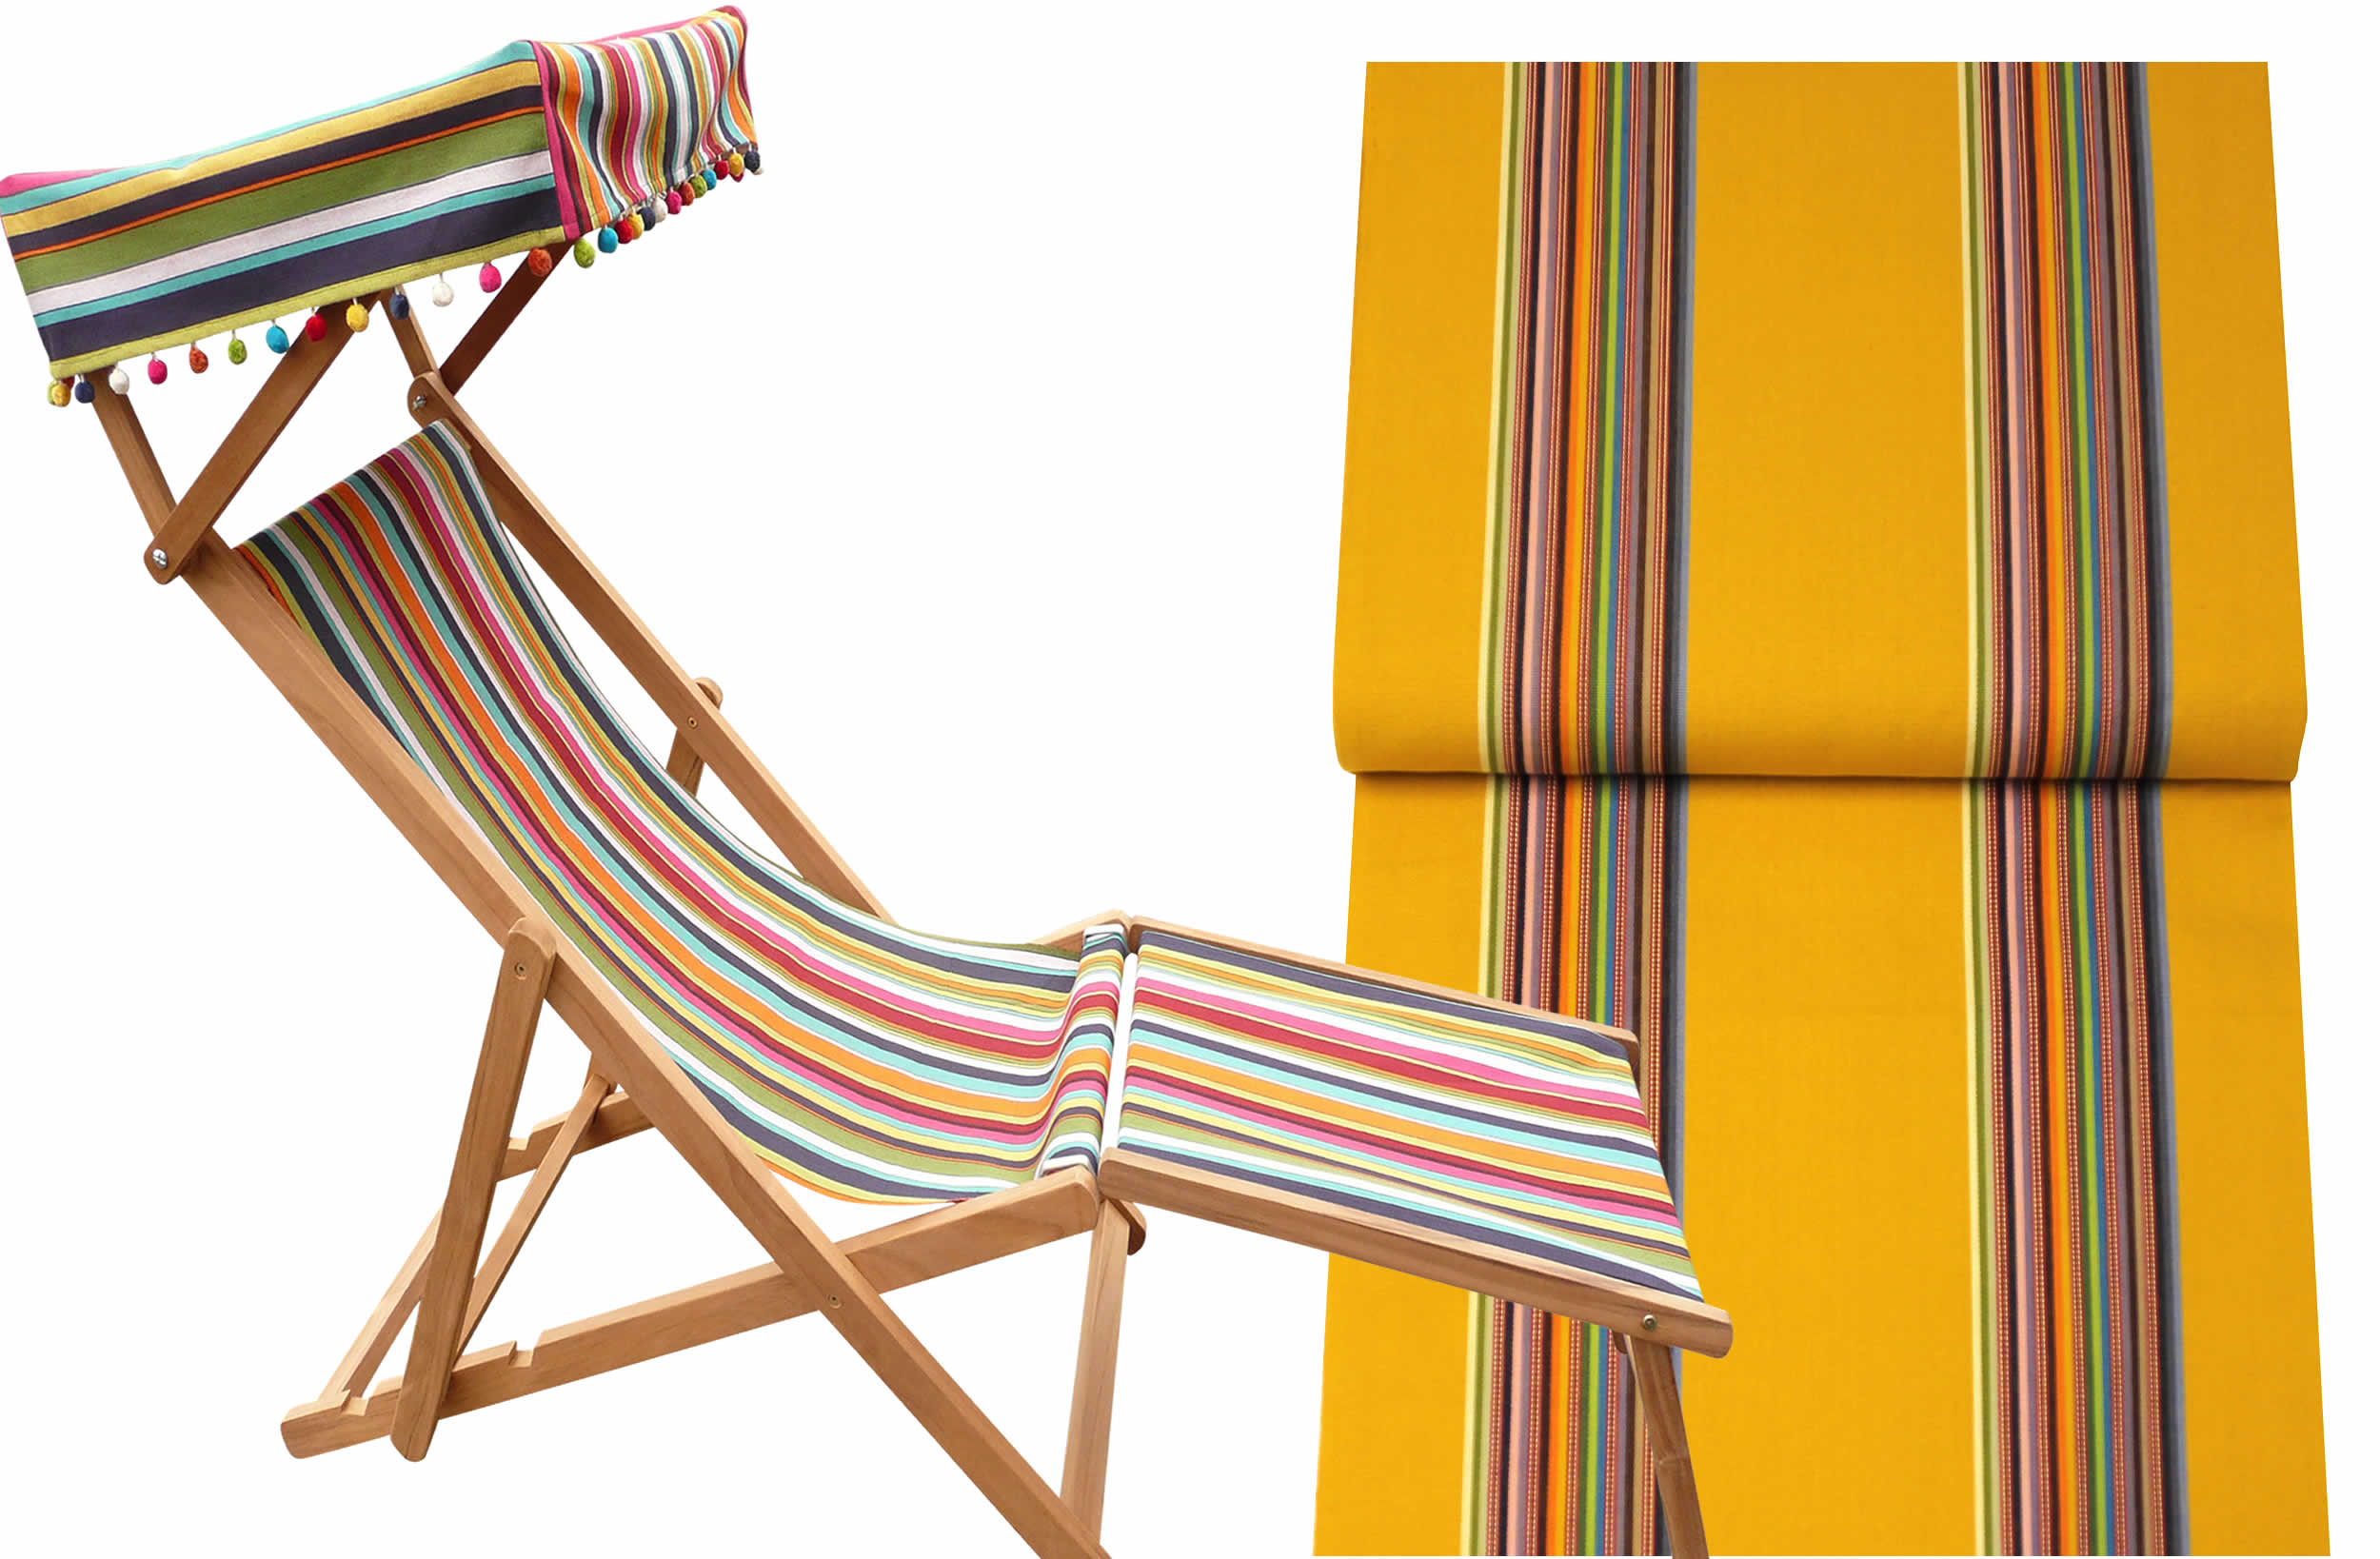 Edwardian Deckchairs with Canopy and Footstool yellow, rainbow